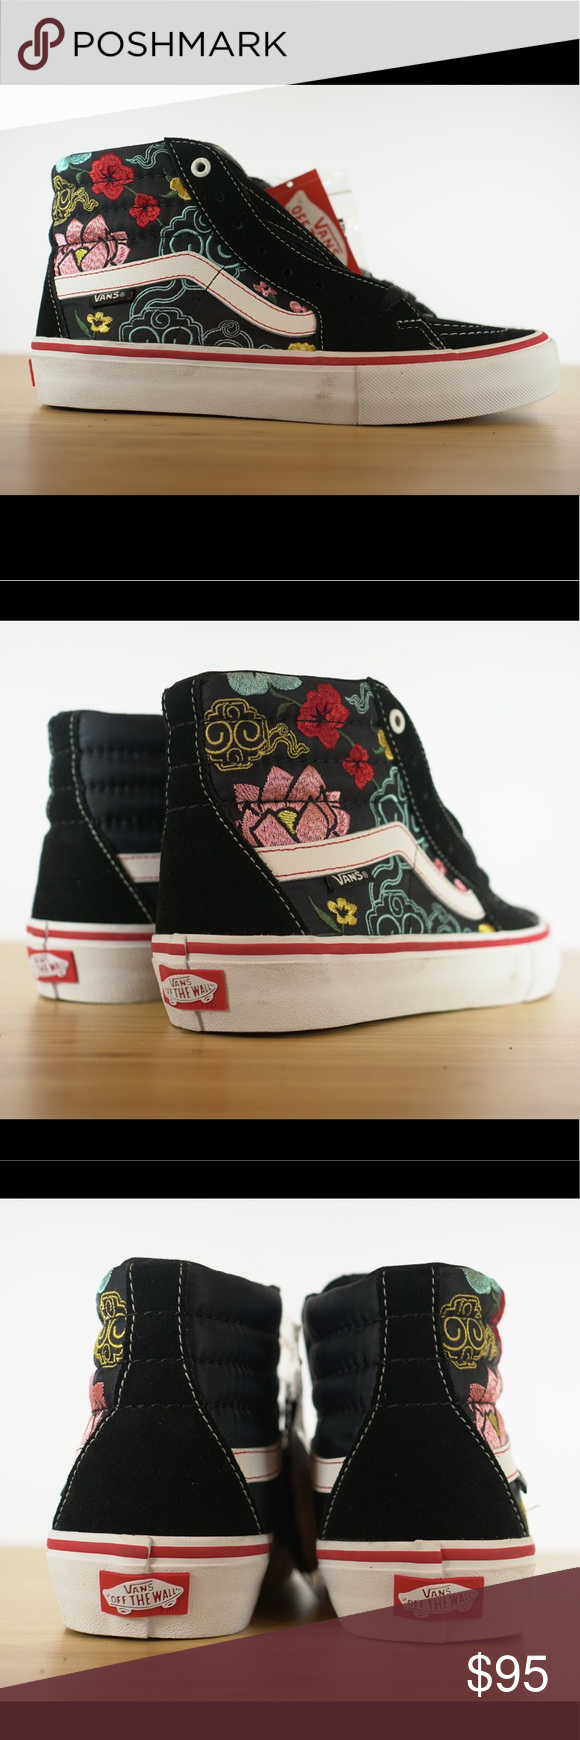 e671df5a88d0df Vans Sk8 Hi Pro Lizzie Armanto Black Floral Casual Vans Sk8 Hi Pro Lizzie  Armanto Black Floral Casual Brand New in Box Ships same day if ordered by  10AM ...